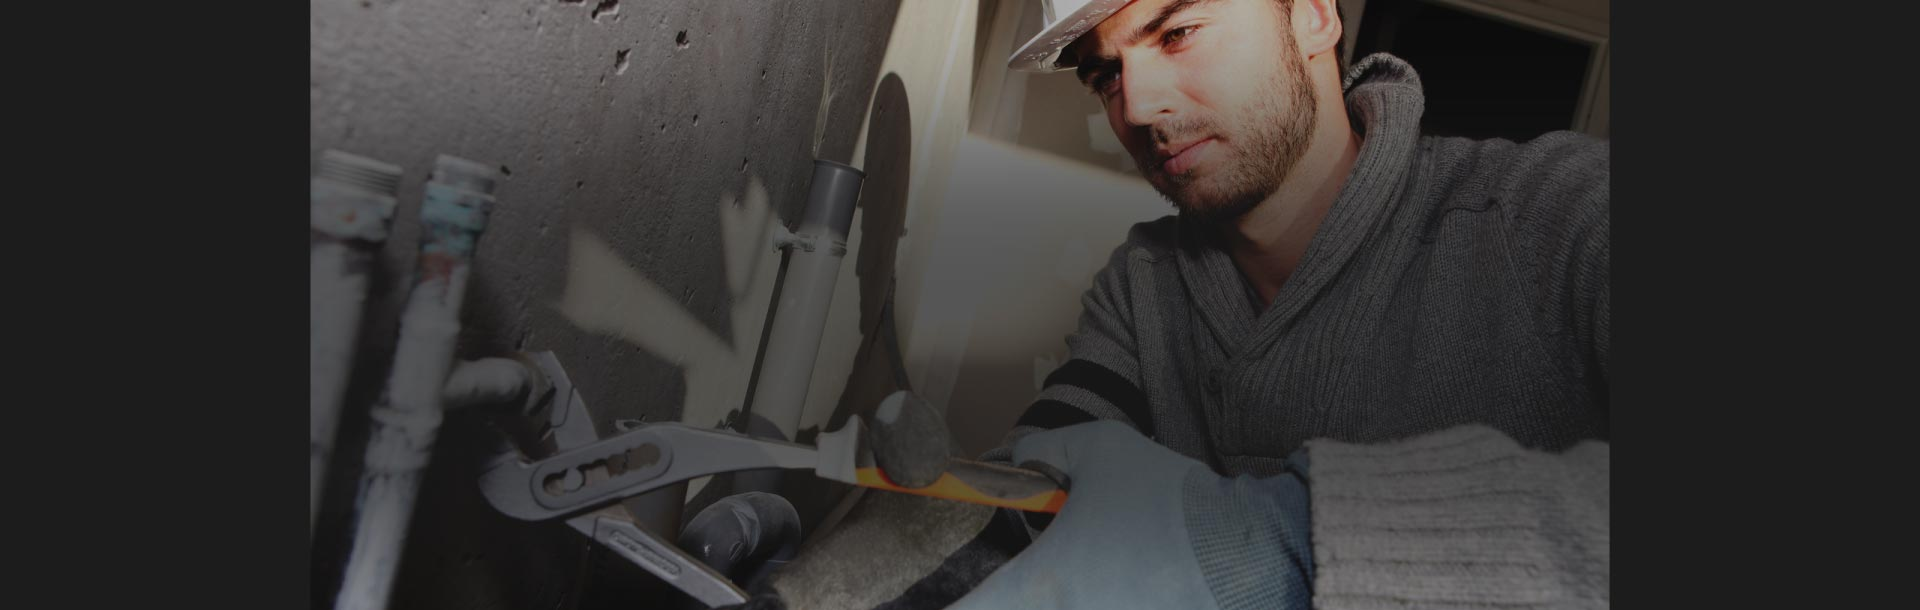 SANTUCCI PLUMBING Voted one of the best Plumbing companies in the Chicago Area